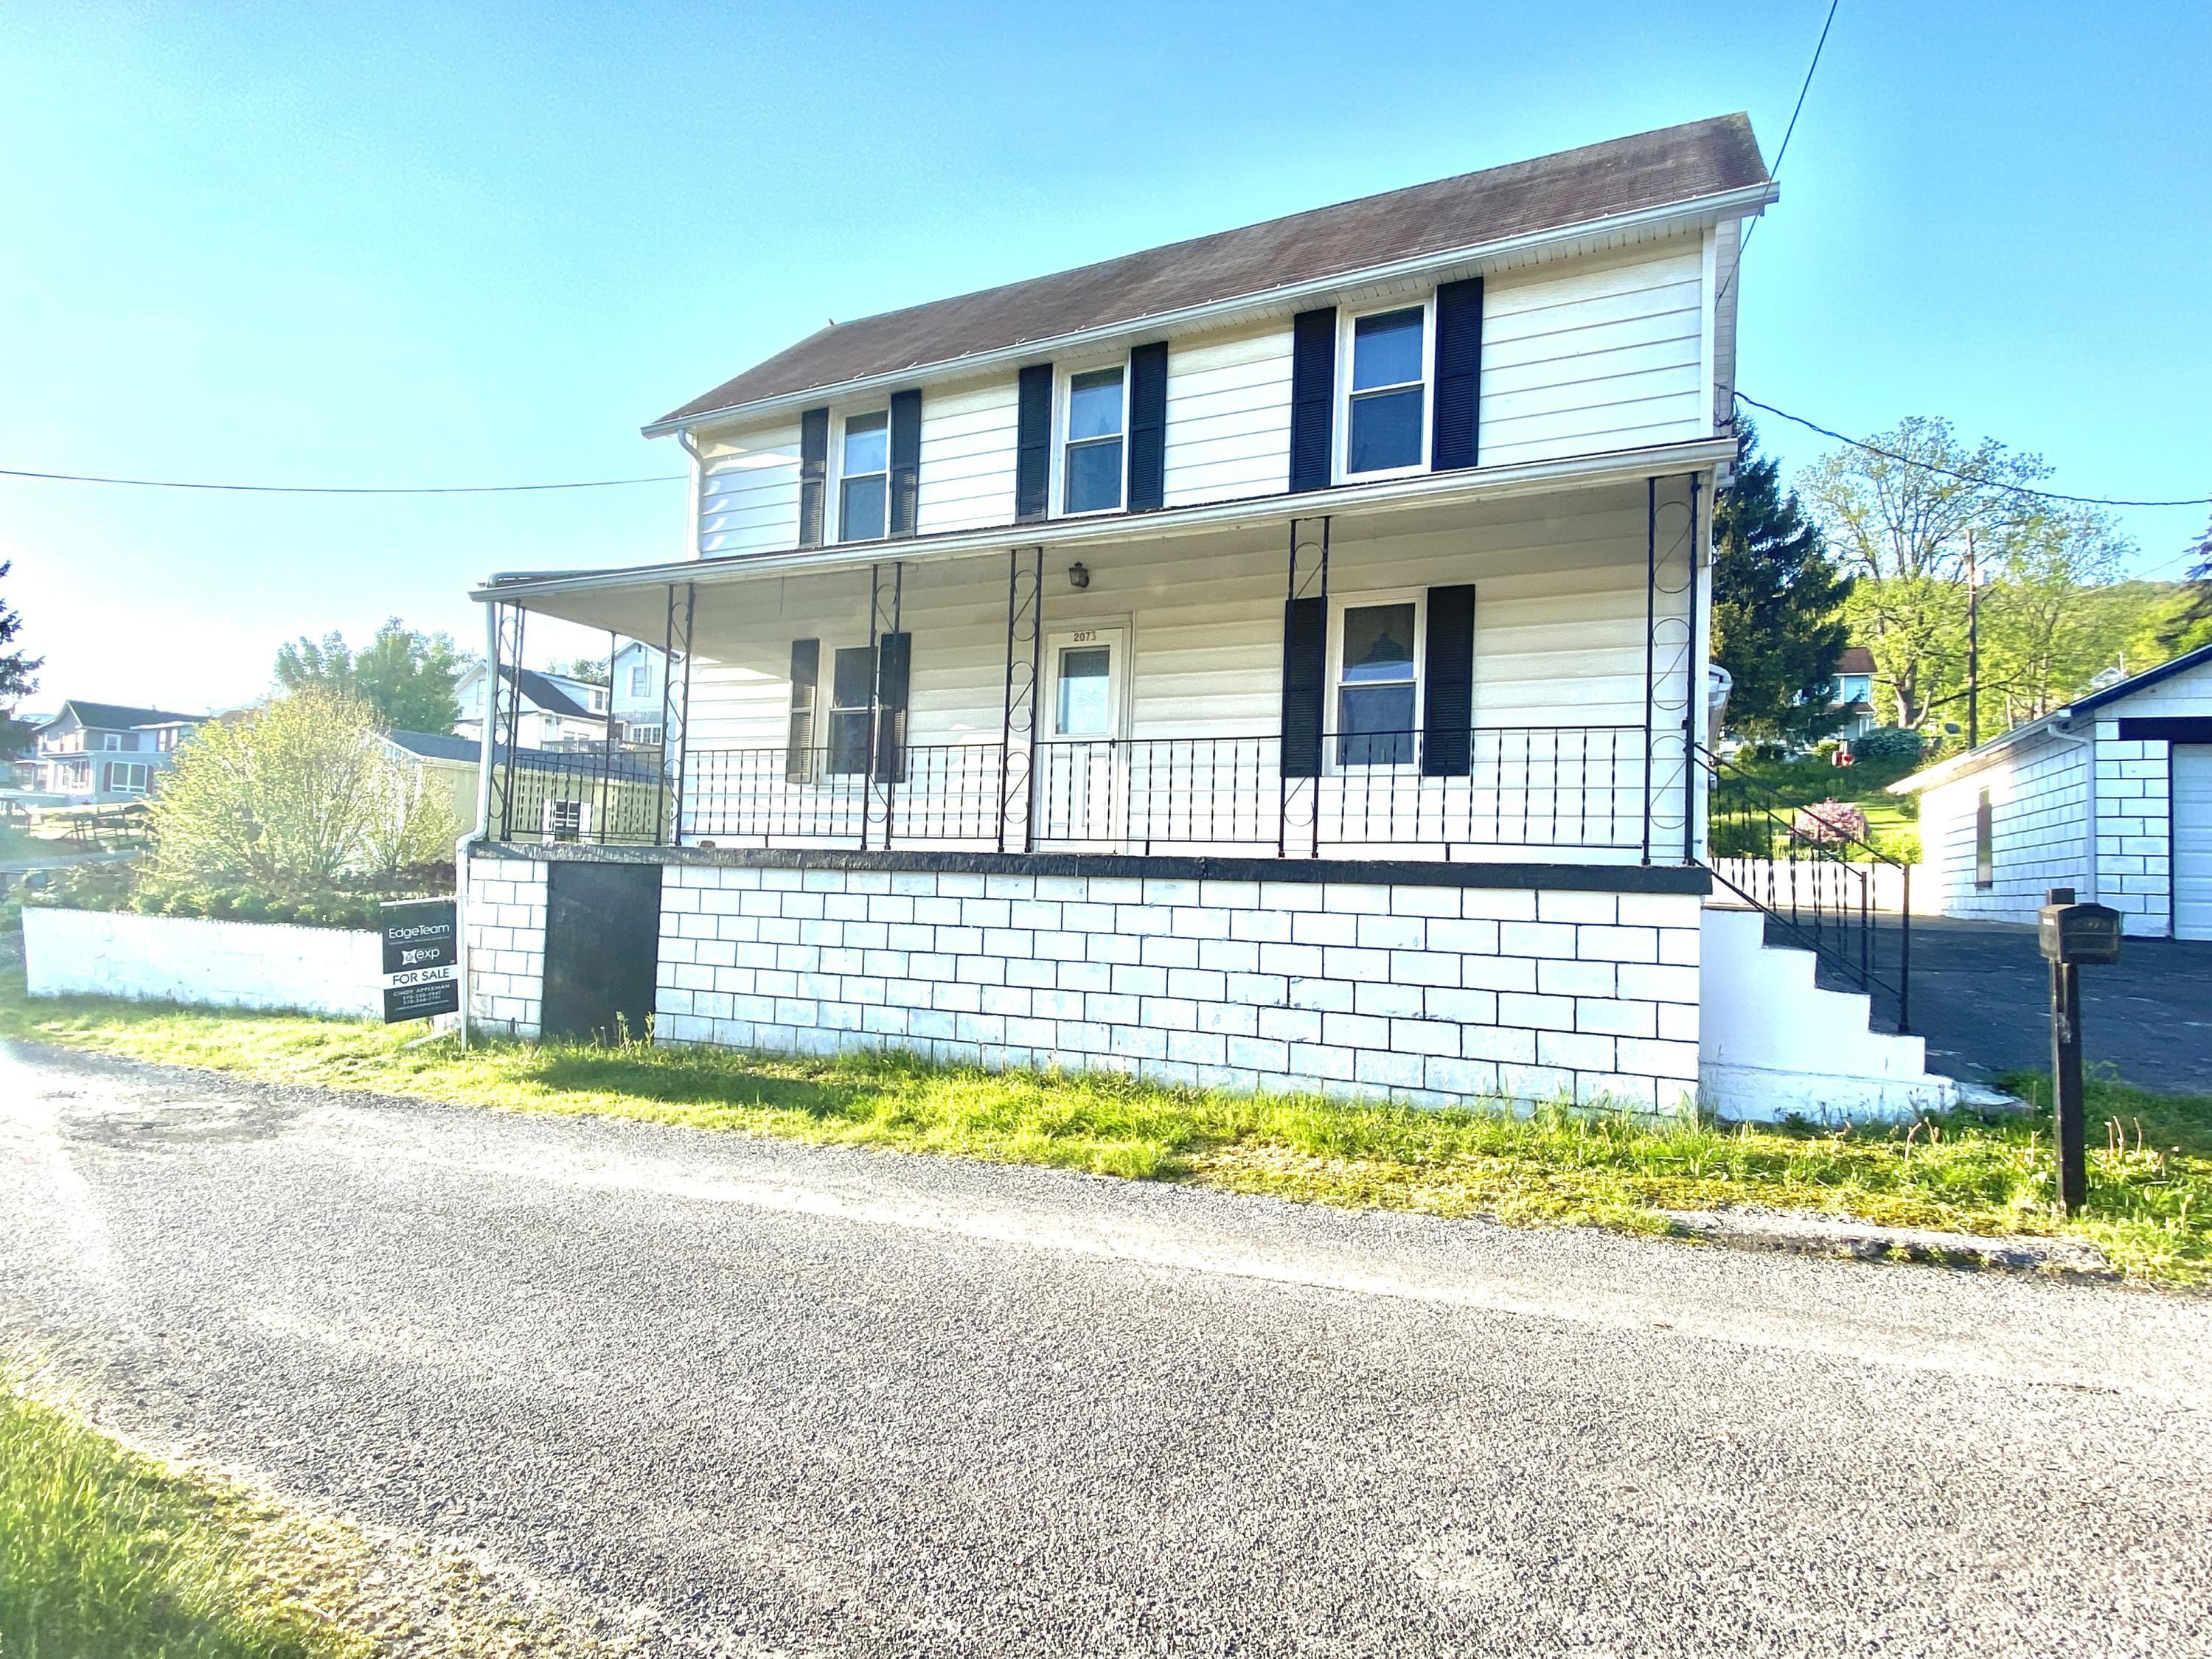 2073 BALD EAGLE AVENUE, S. Williamsport, PA 17702, 3 Bedrooms Bedrooms, ,2 BathroomsBathrooms,Residential,For sale,BALD EAGLE,WB-92540